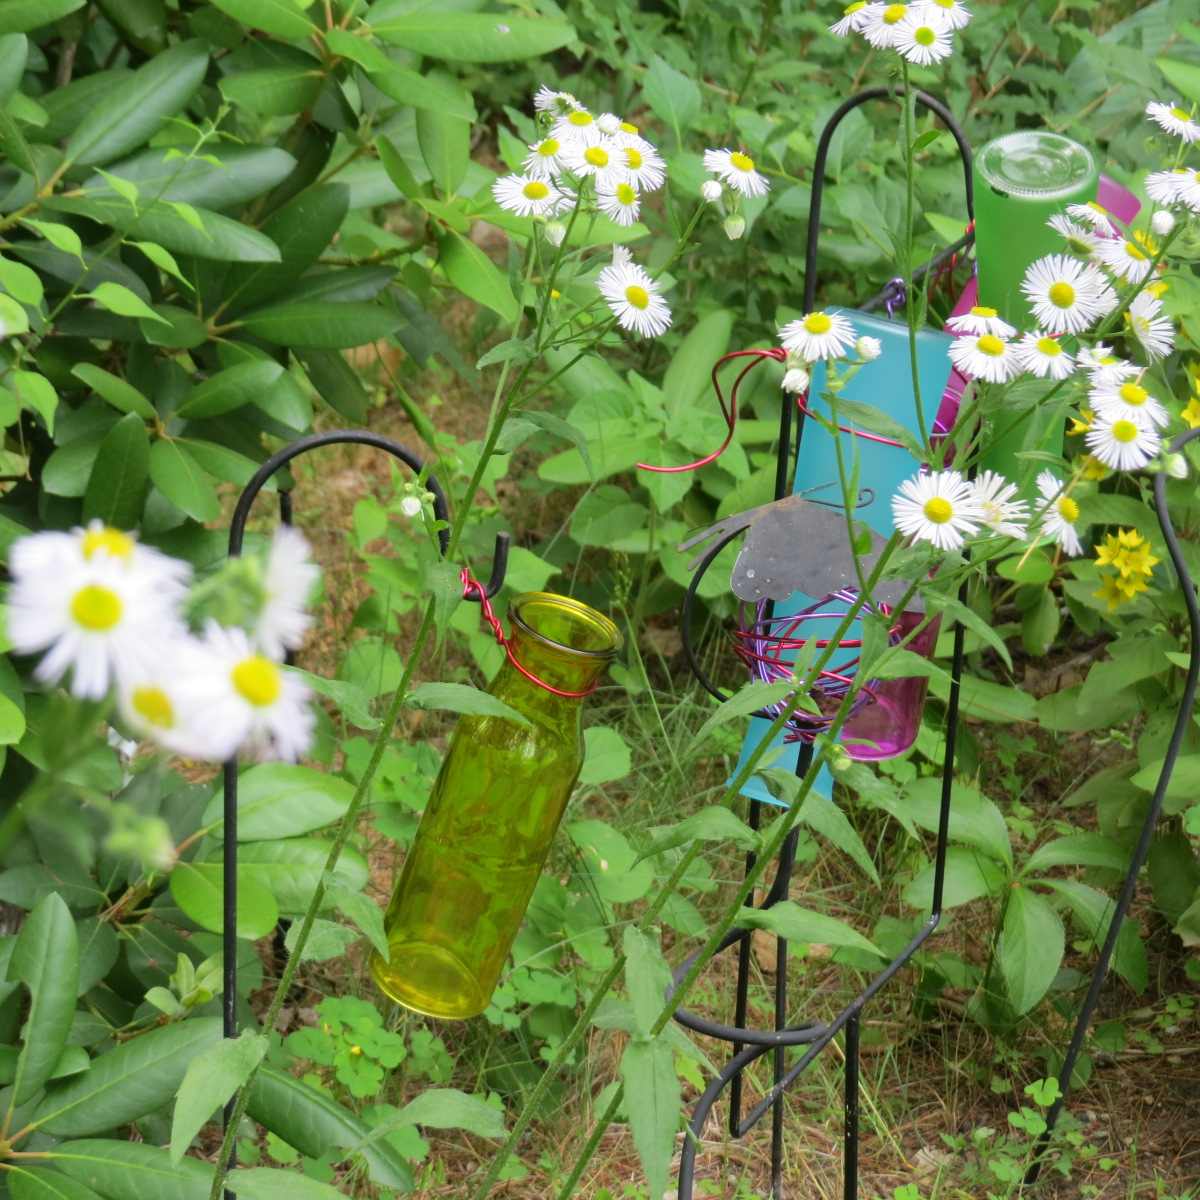 DesignsandEvents: Garden Art and the Summer Garden